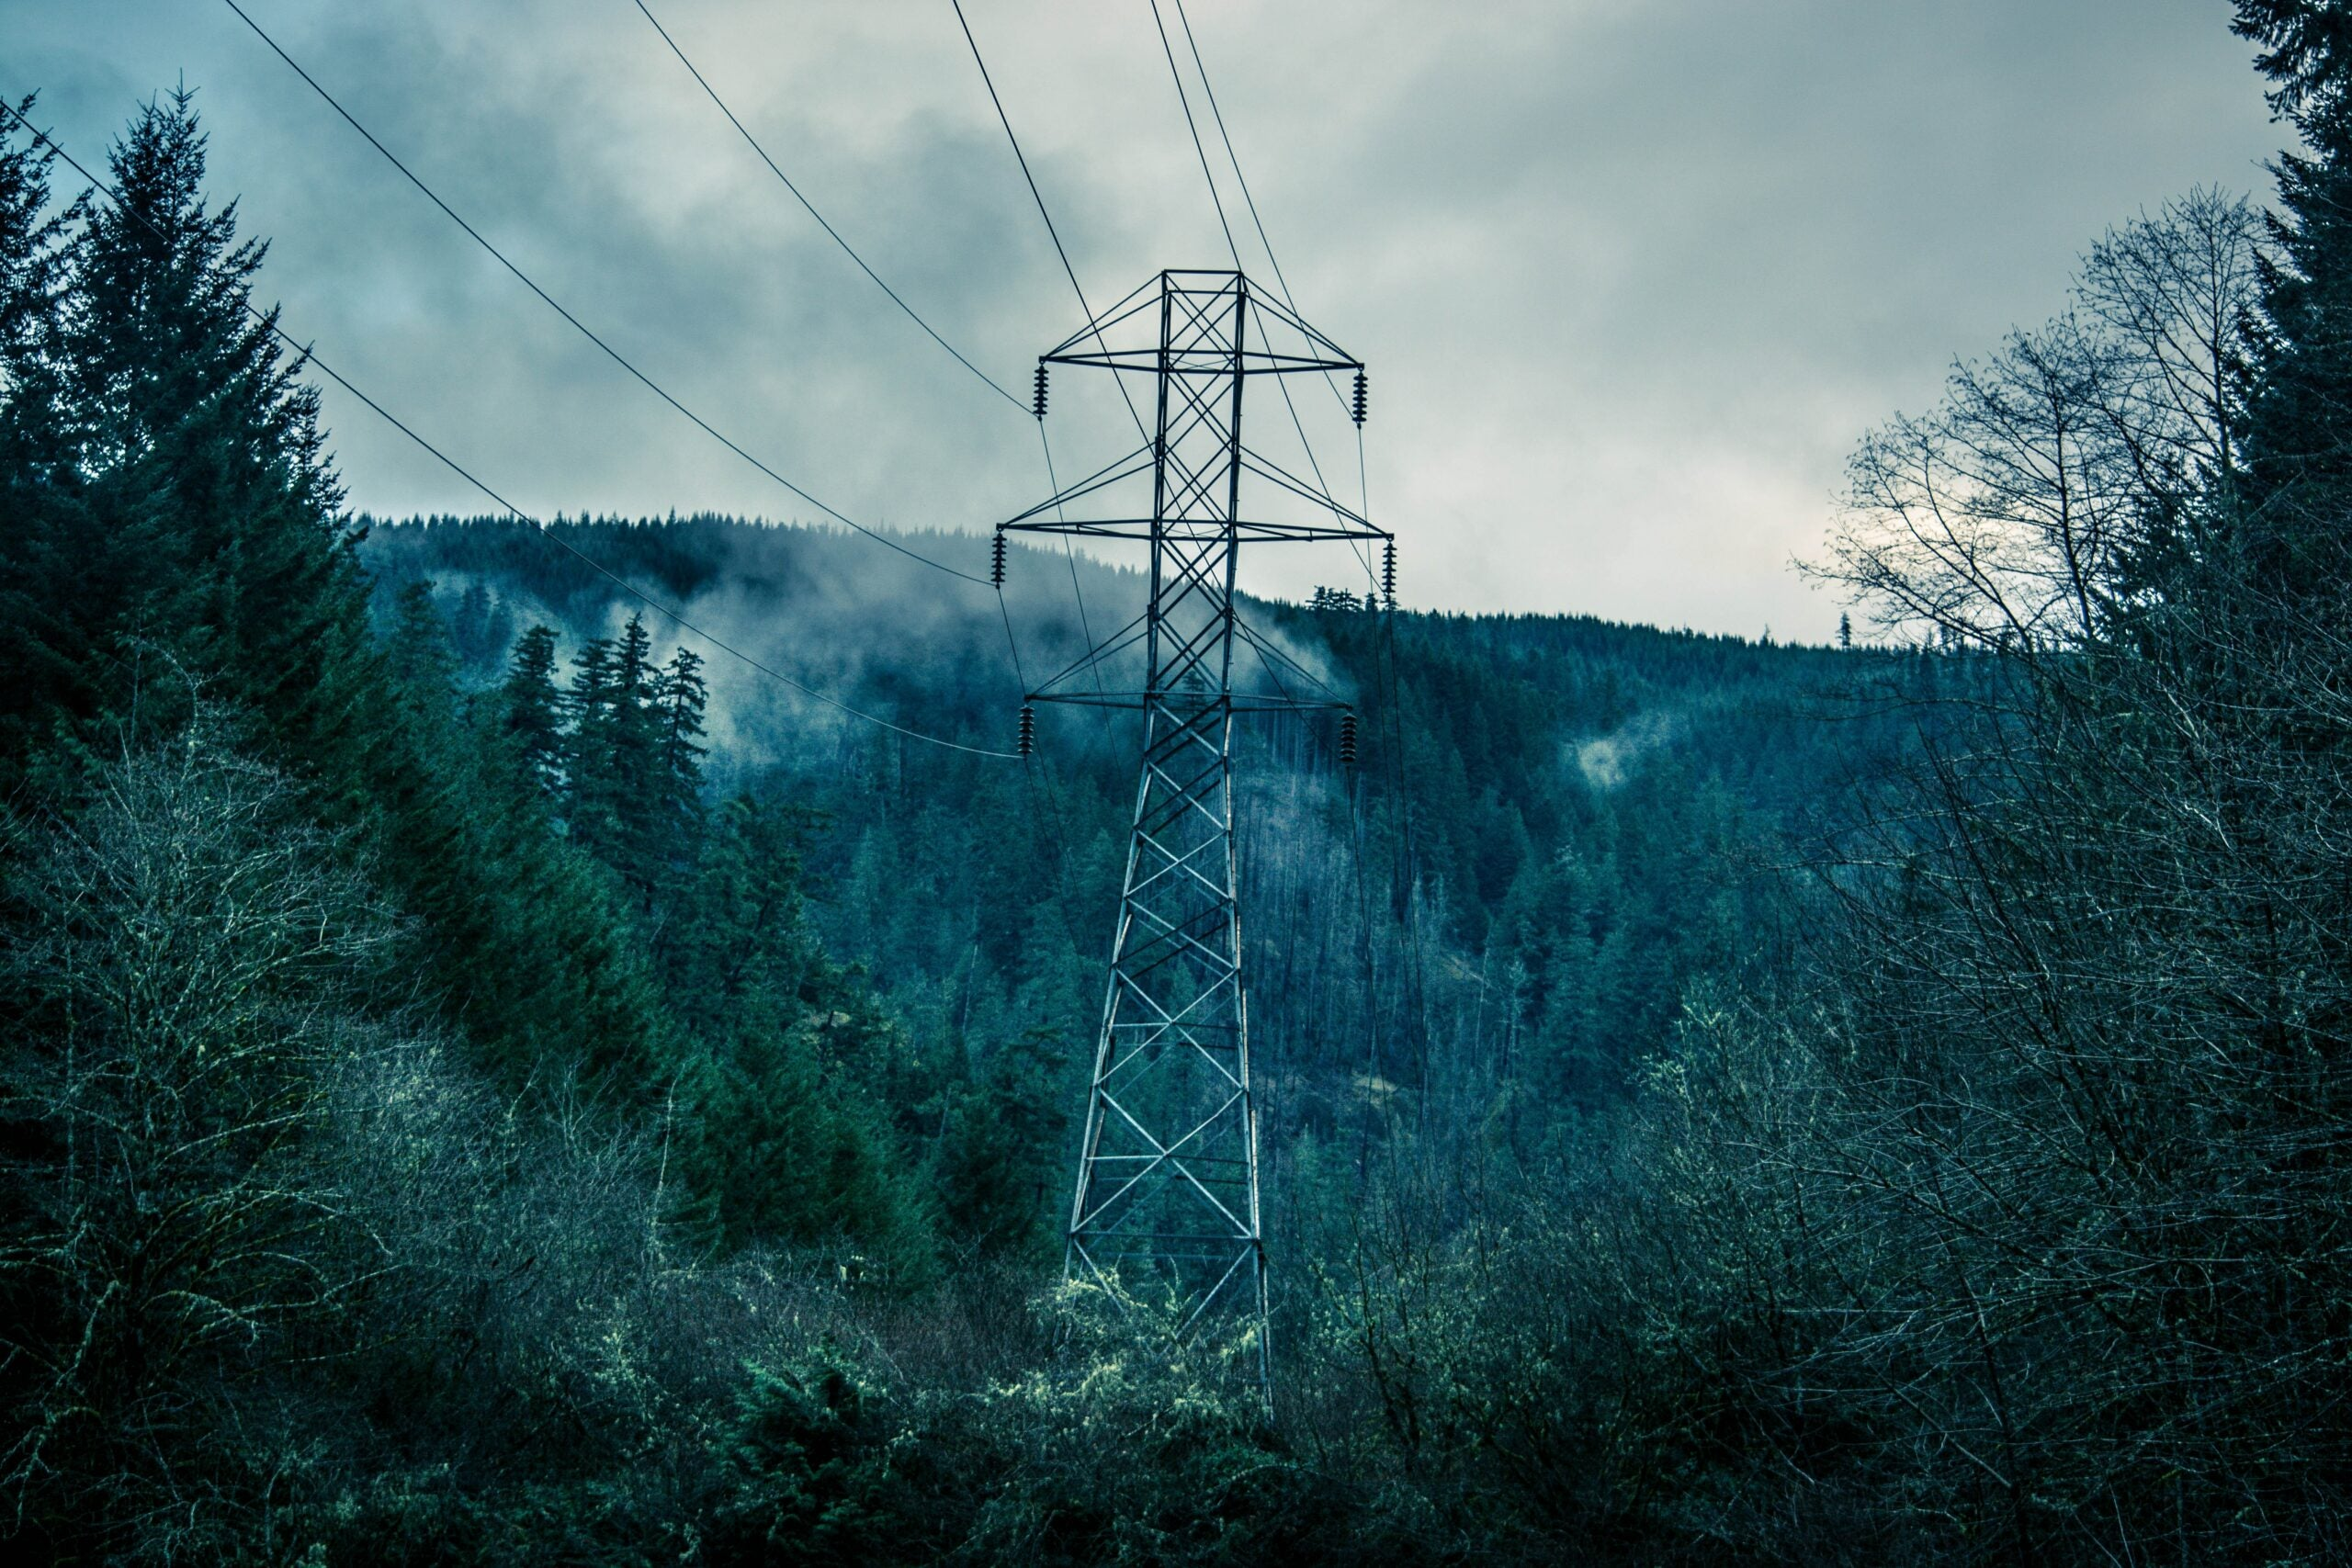 Electricity lines over a deep, gloomy forest with gas rising.